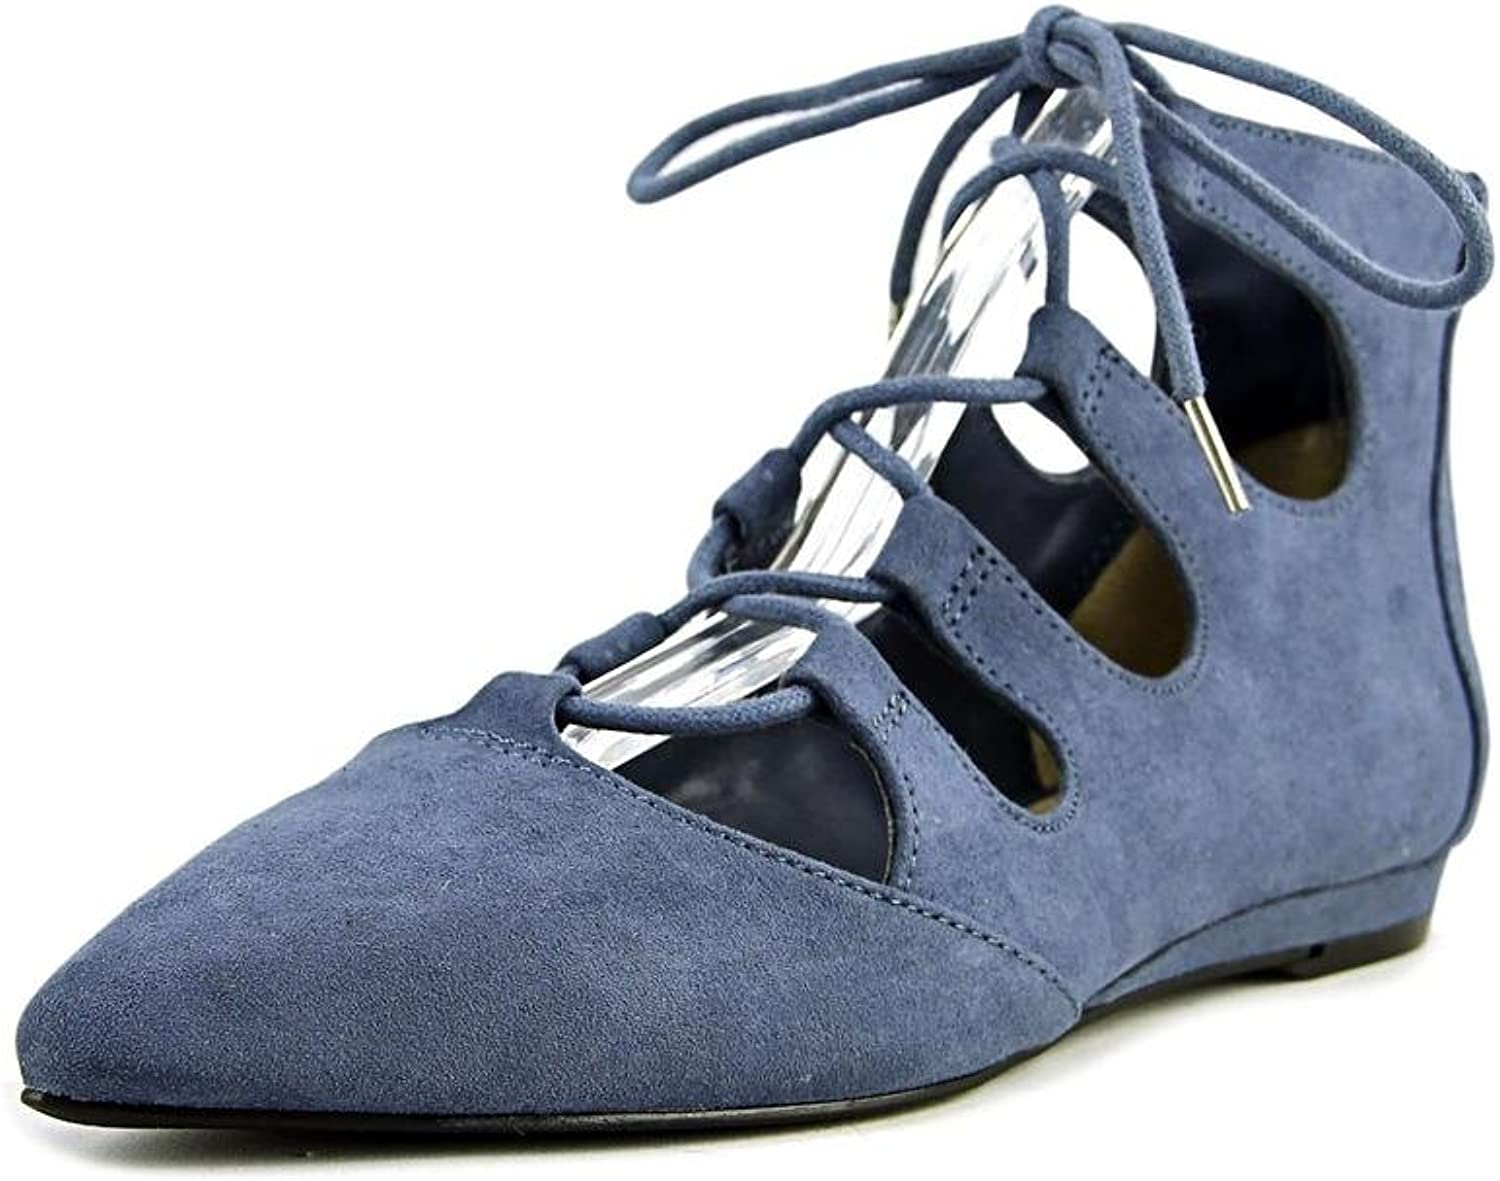 Bar III Womens Lasso Fabric Pointed Toe Ankle Strap Ballet Flats